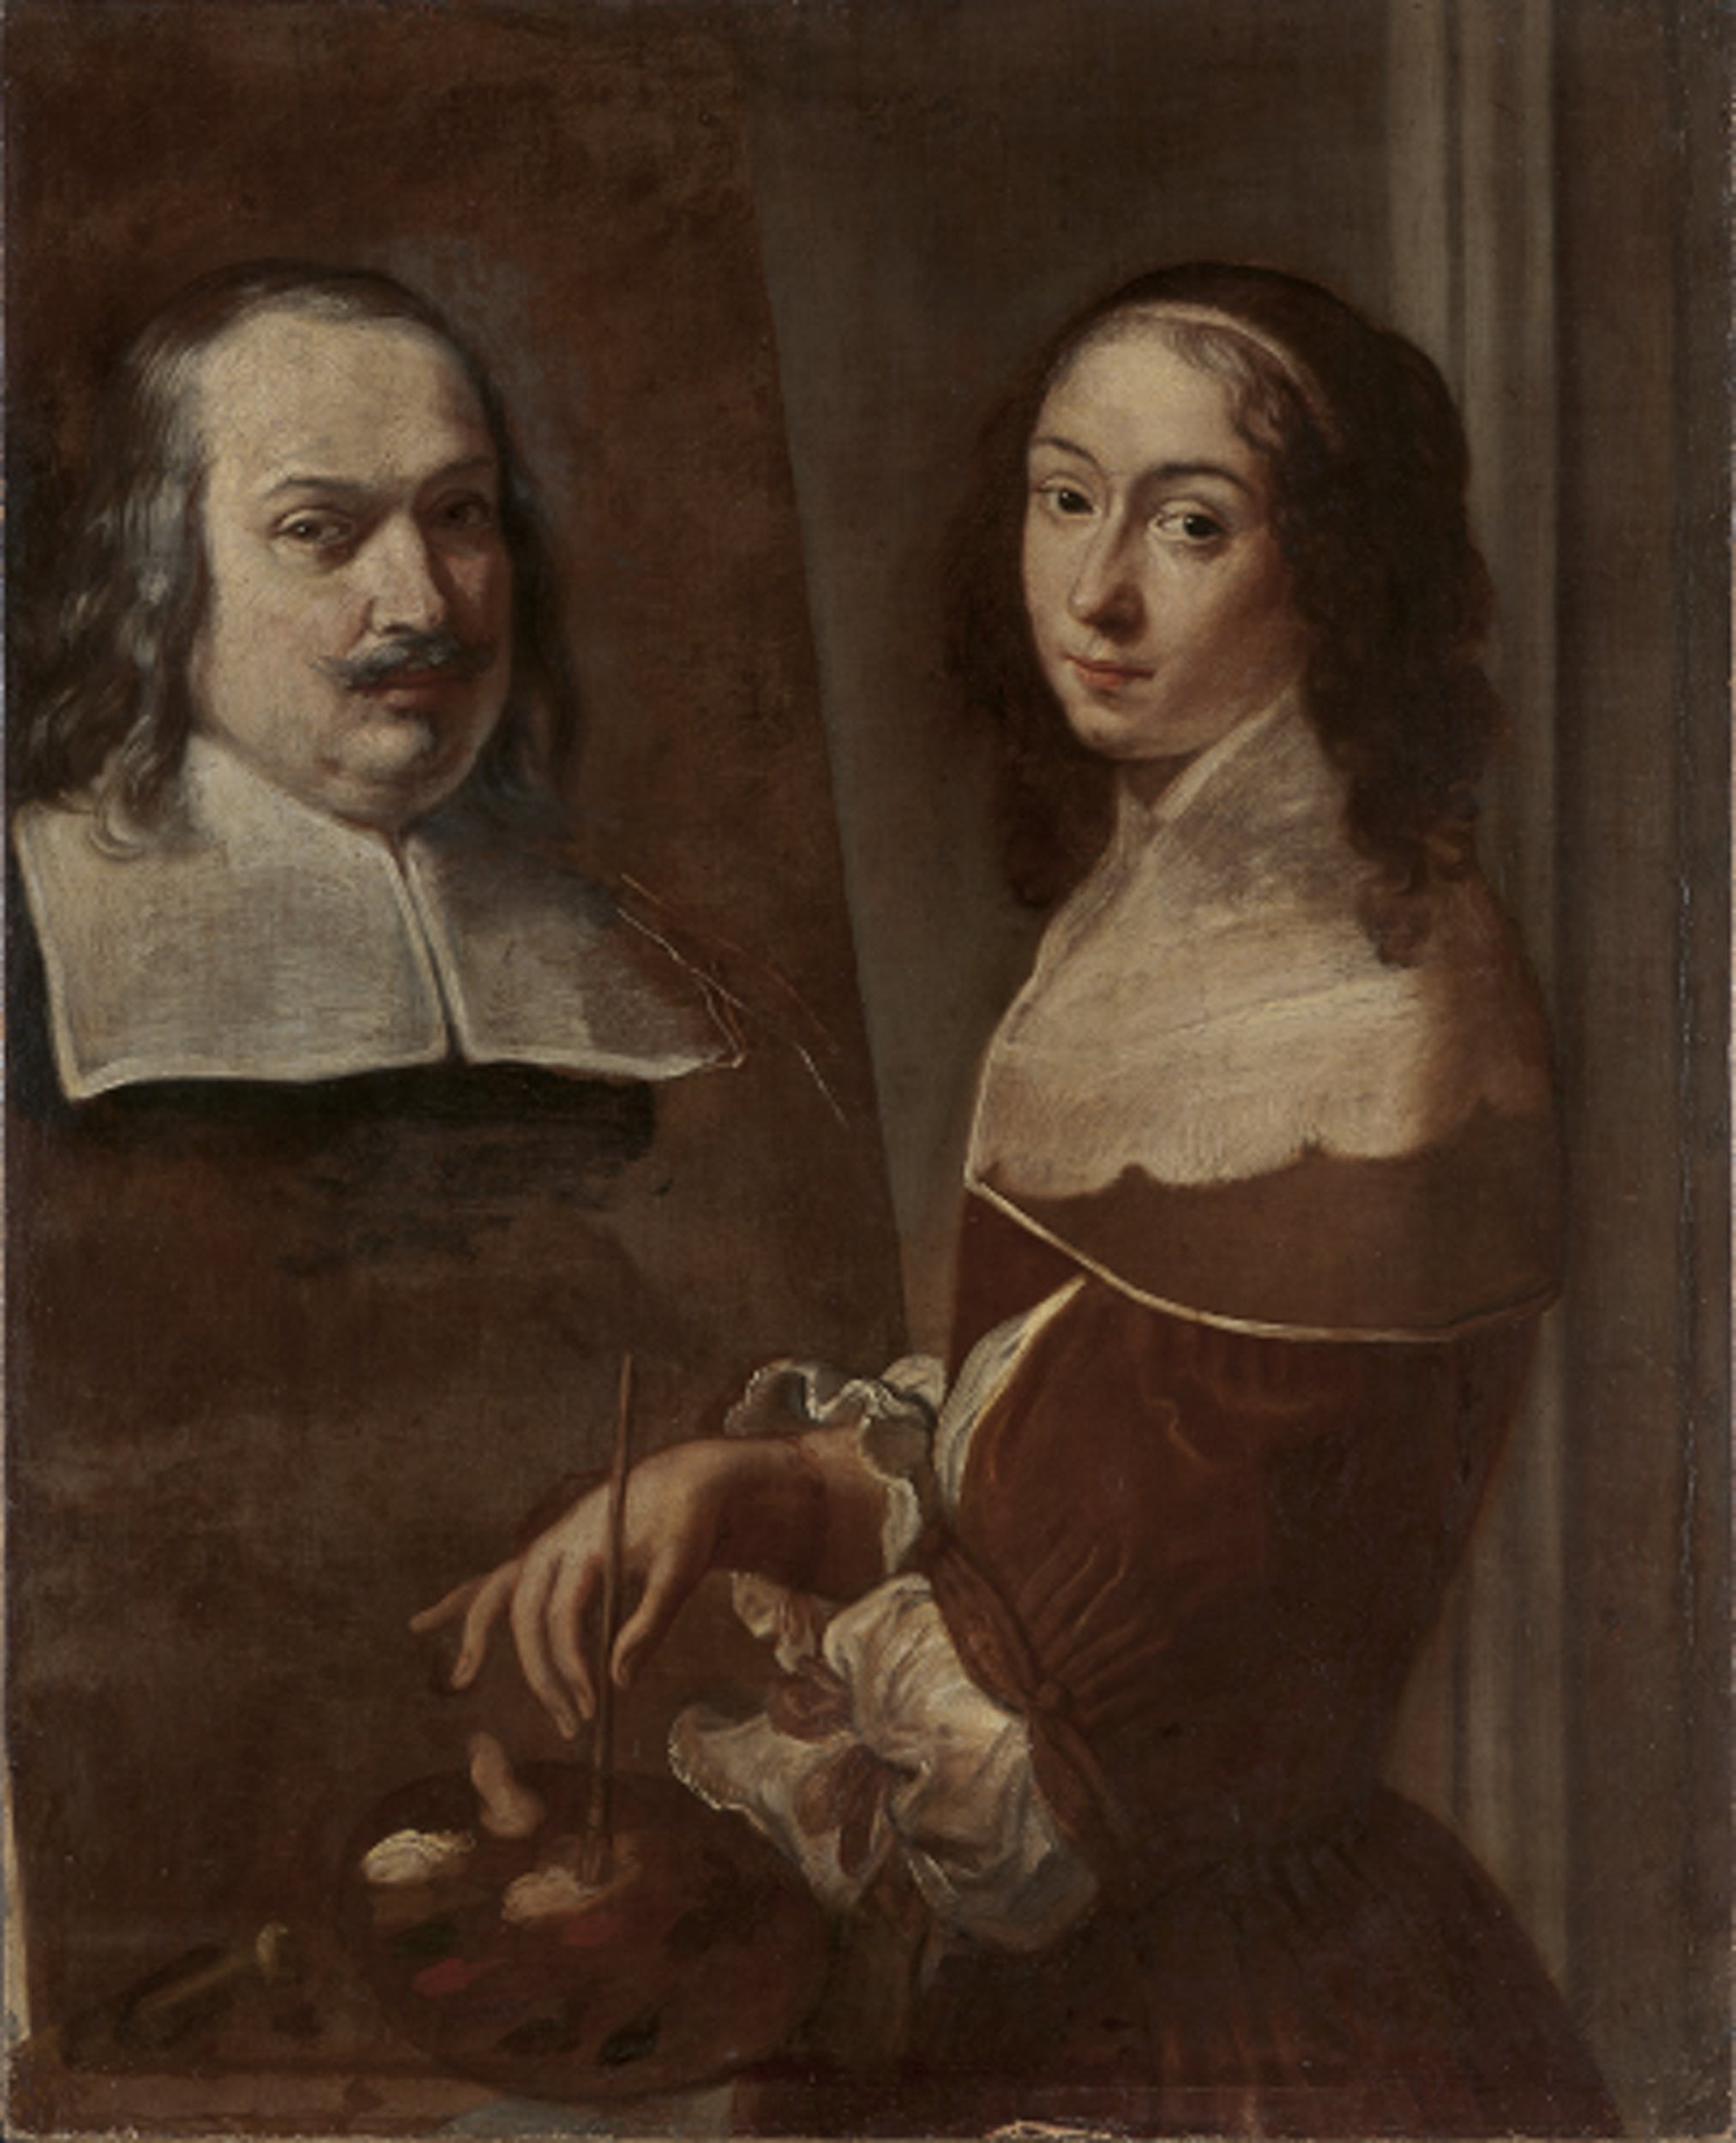 Fig. 6 Elisabetta Sirani, Autoritratto dell'artista che dipinge il ritratto del padre (Doppio autoritratto), San Pietroburgo, The State Hermitage Museum - Portrait of the Artist Painting a Portrait of her Father (Double Self-portrait), St. Petersburg, The State Hermitage Museum, © The State Hermitage Museum. Photo by Alexander Lavrentiev.